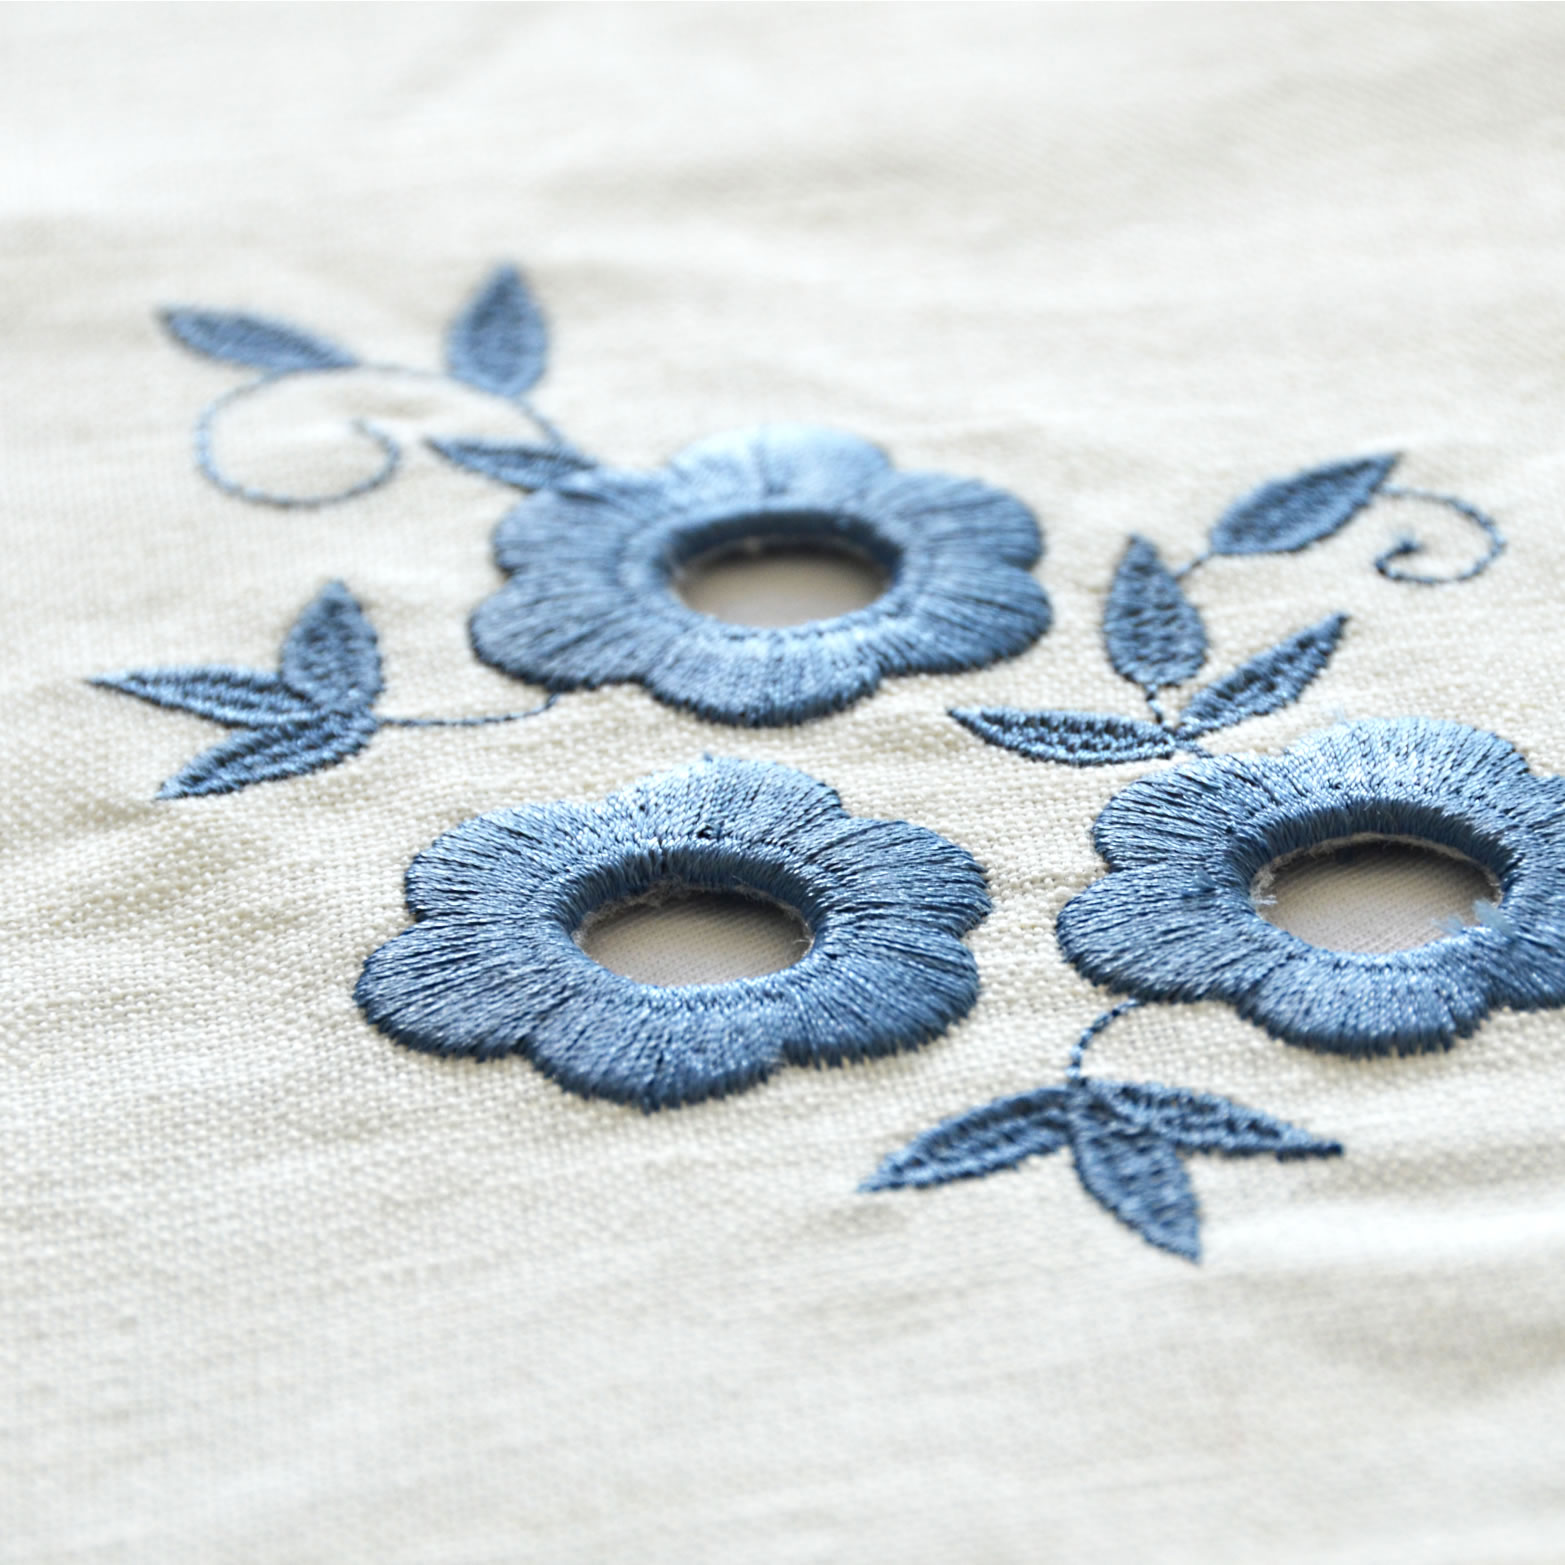 CutWork avanzato: Appliqué compreso